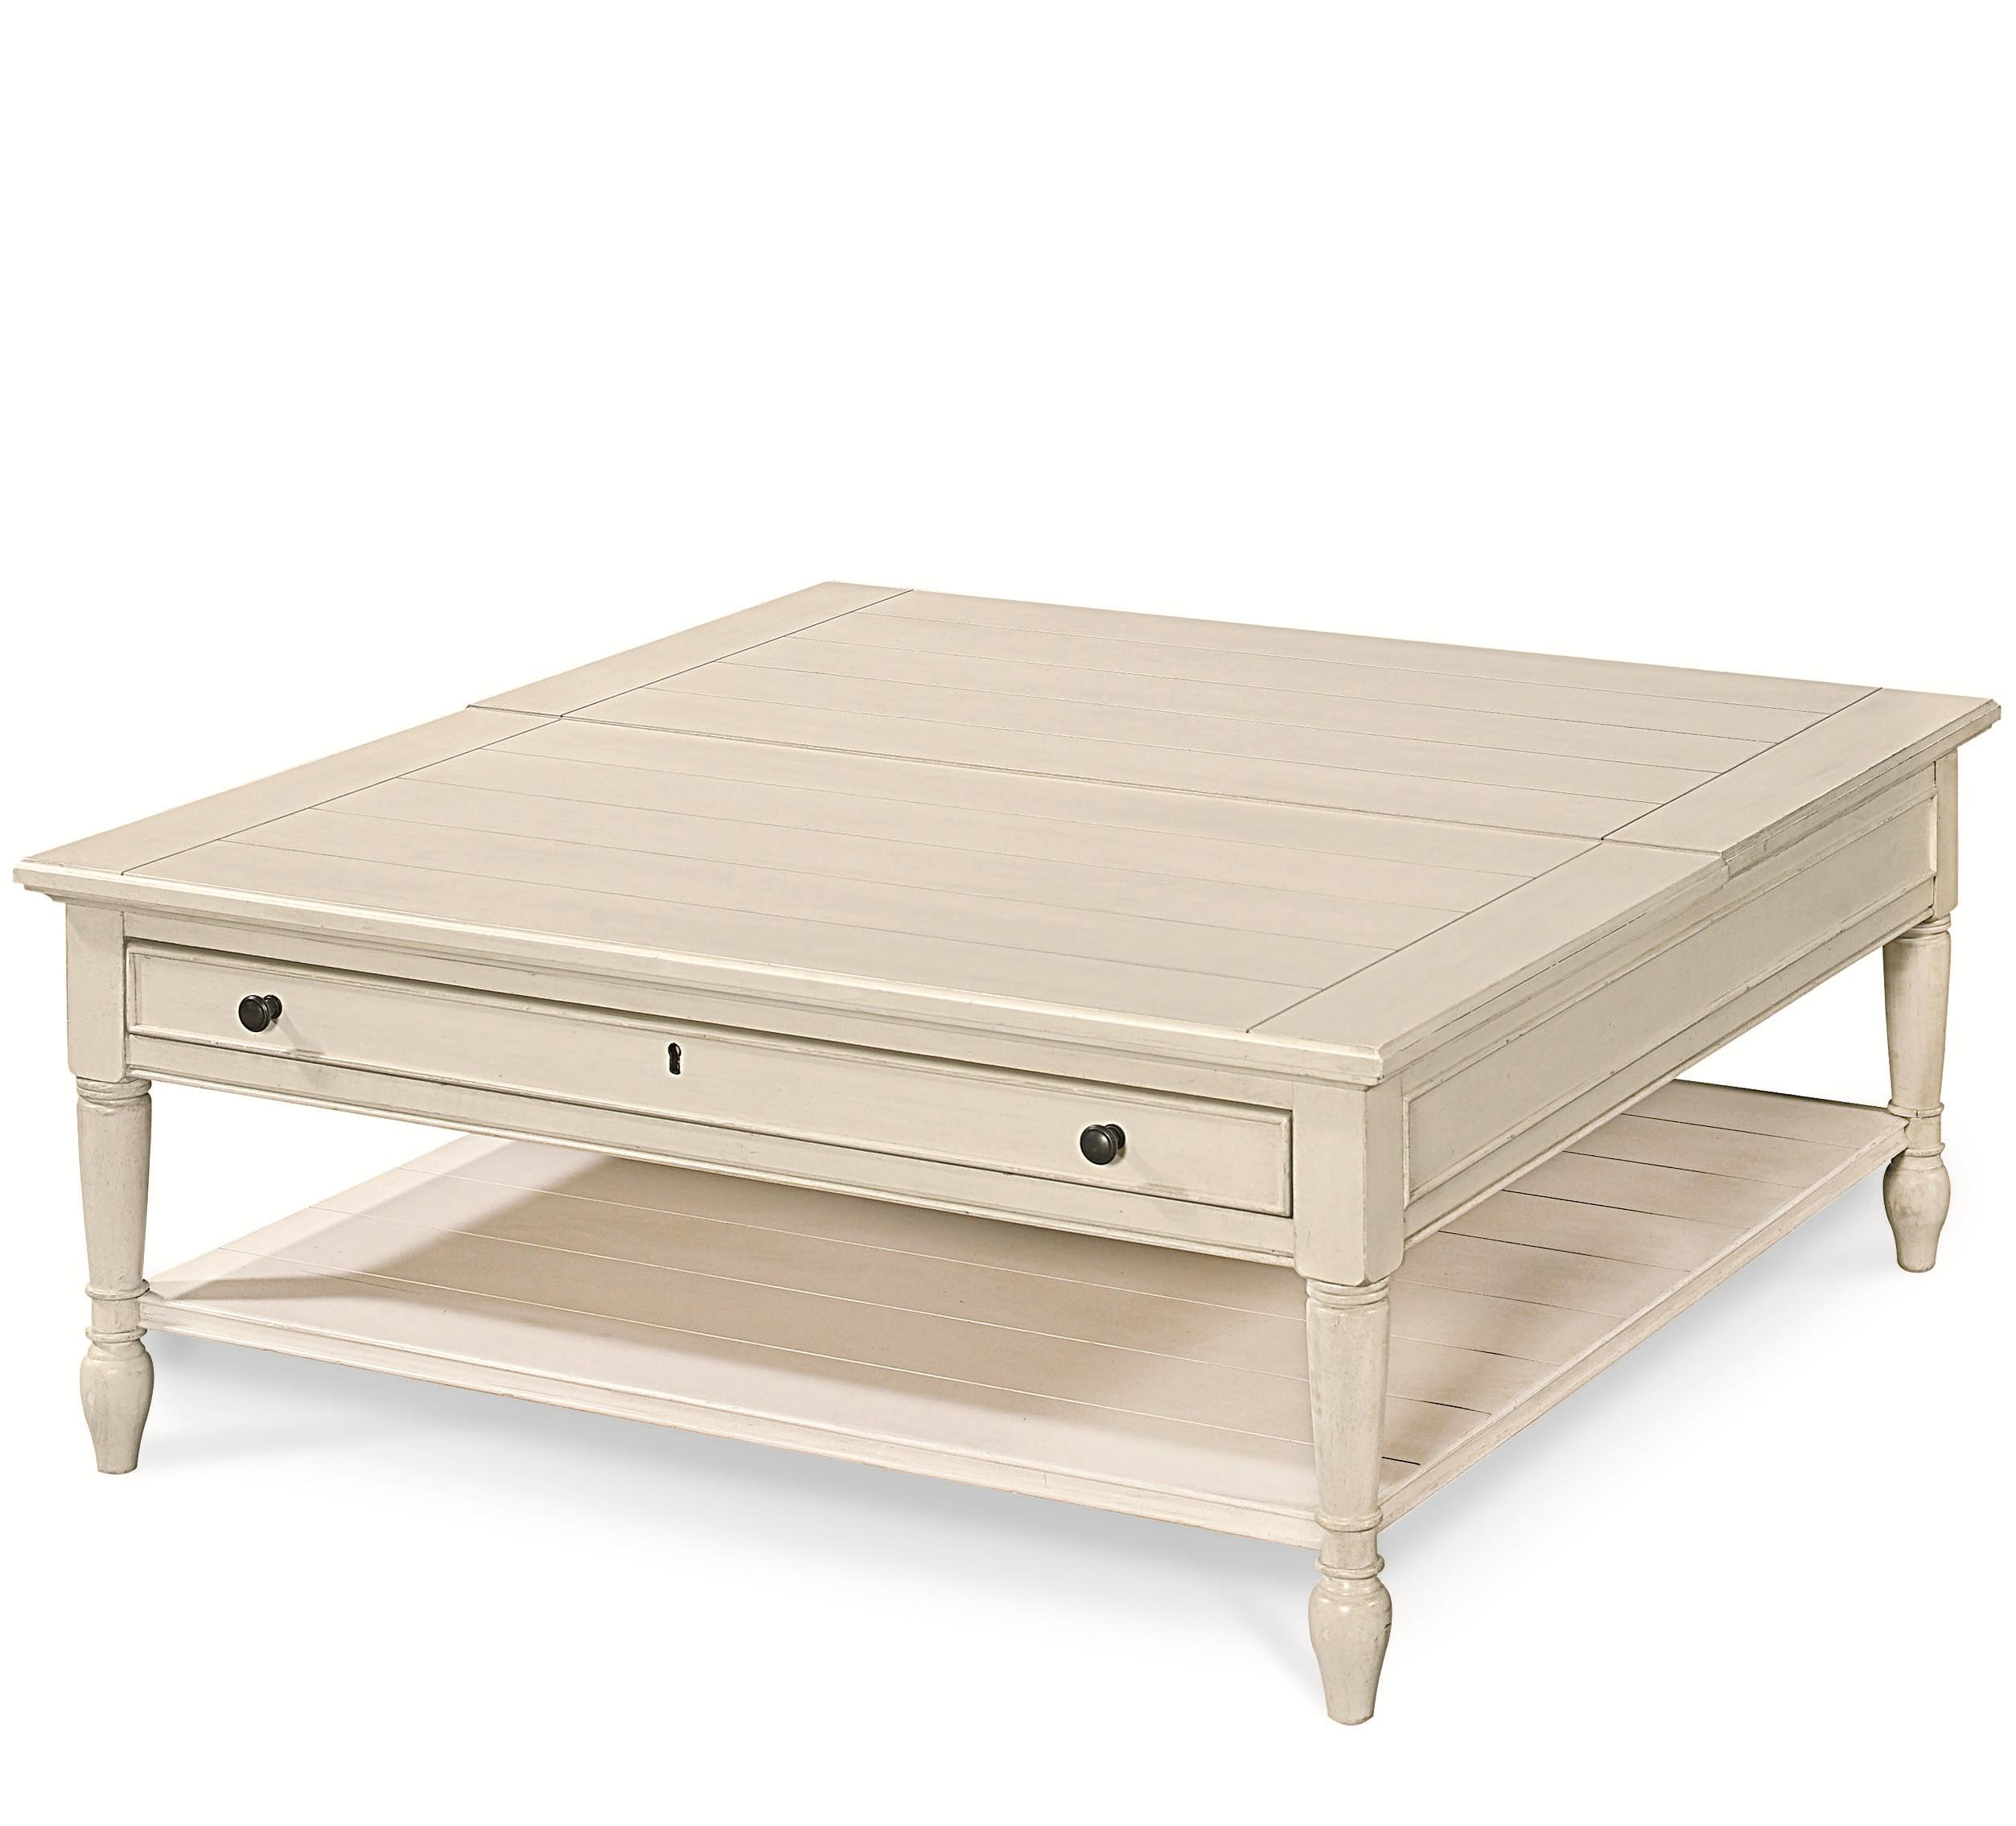 Summer Hill Lift Top Cocktail Table by Universal at Baer's Furniture